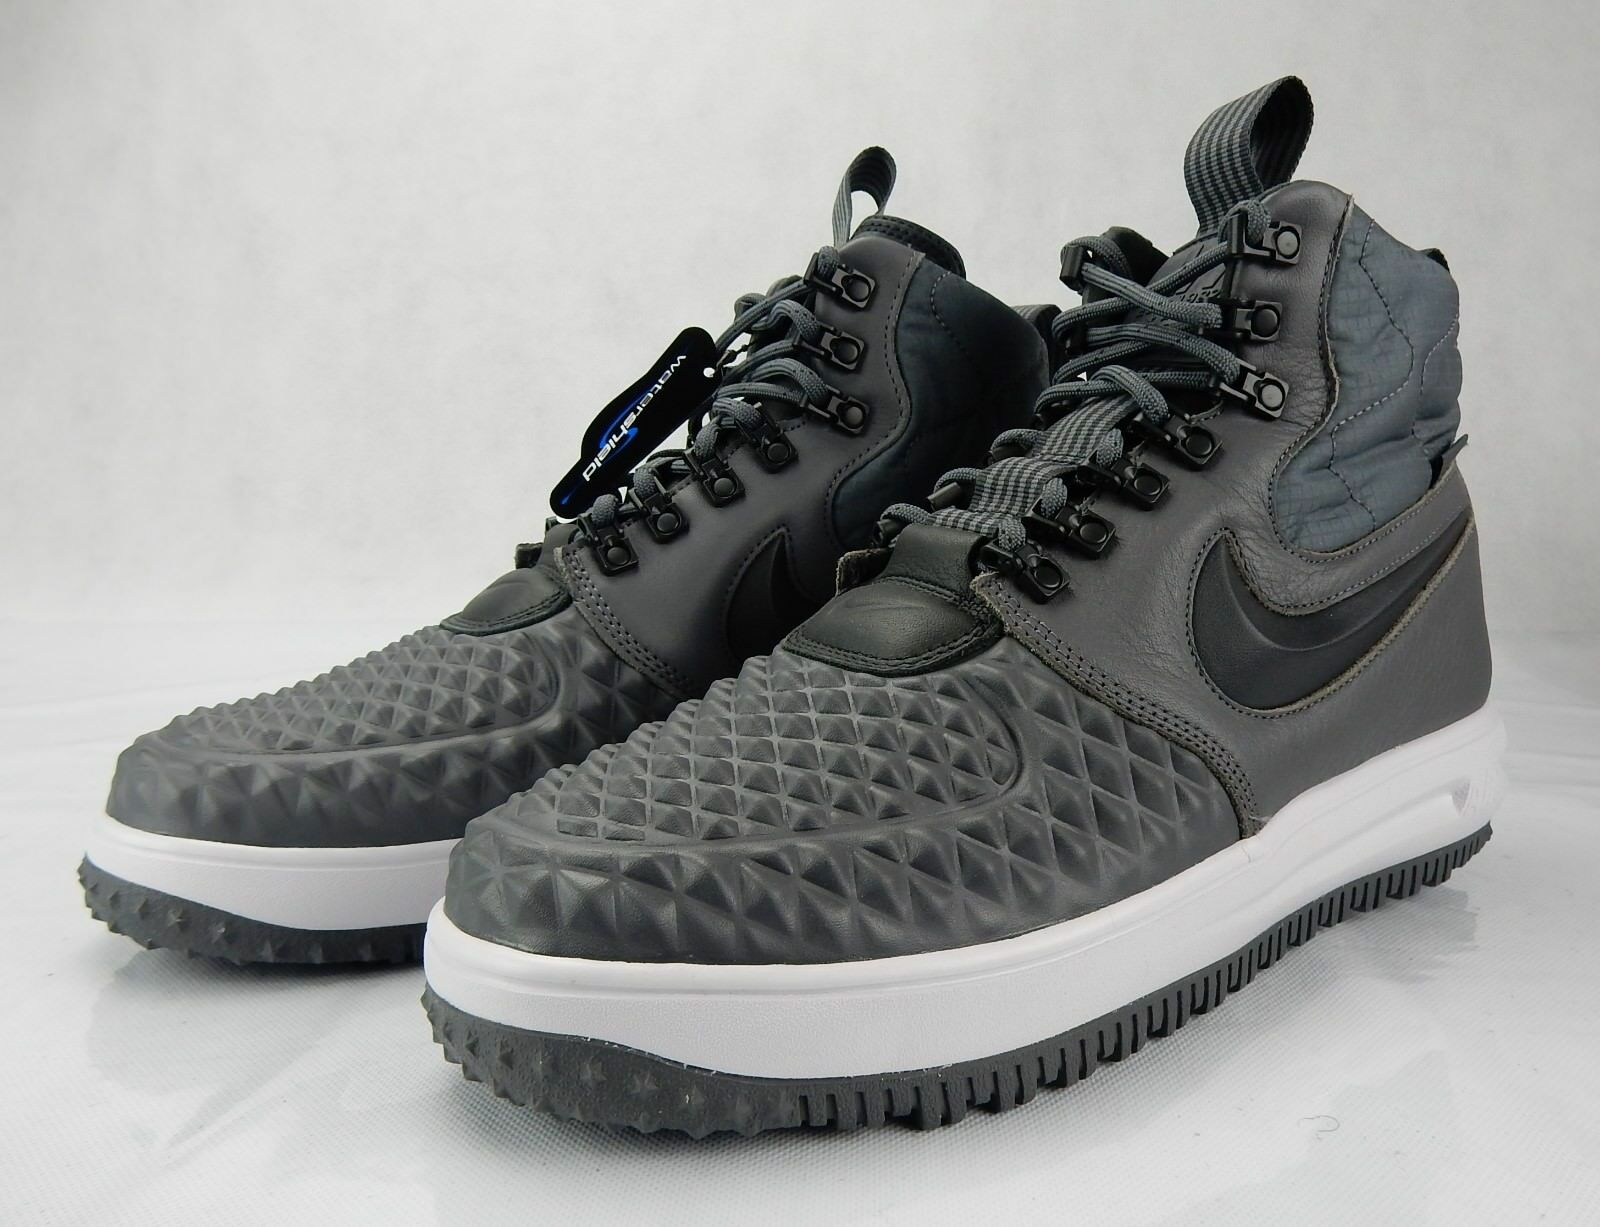 Nike Air Lunar Force 1 Duckboots 916682 003 S Shoes Grey Anthracite Mens Size 10